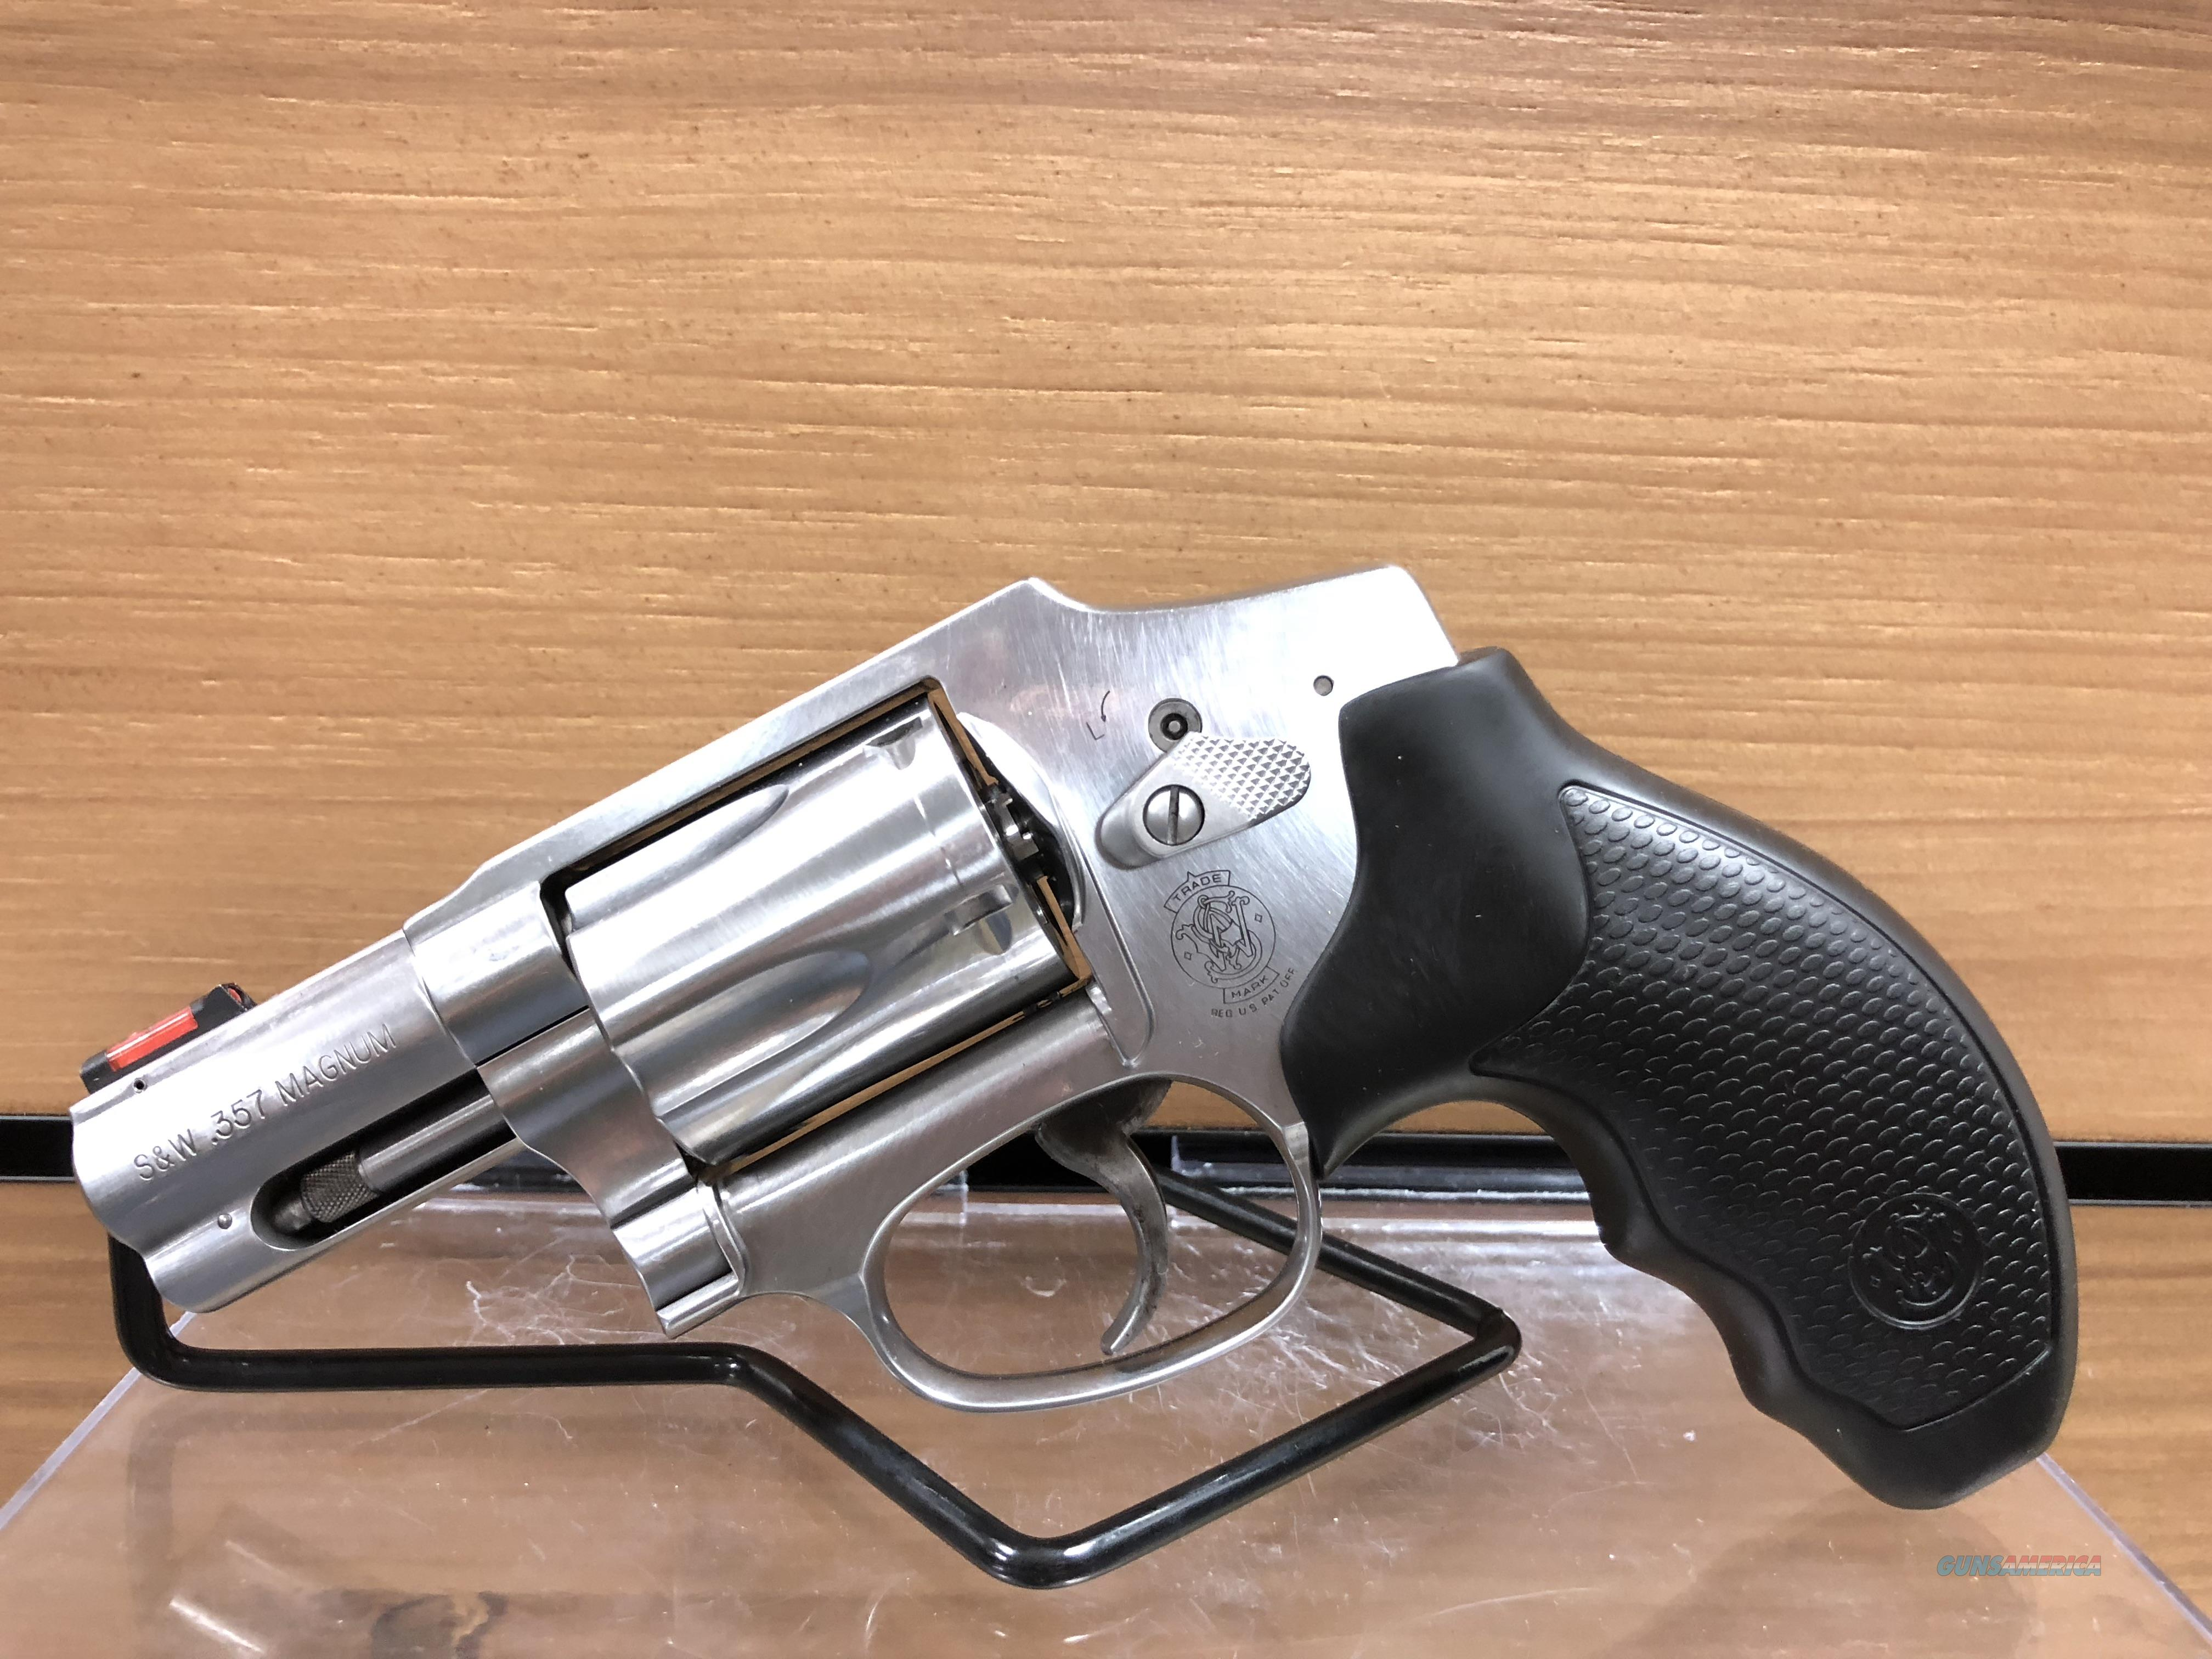 USED SMITH & WESSON 640, 357MAG  Guns > Pistols > Smith & Wesson Revolvers > Small Frame ( J )